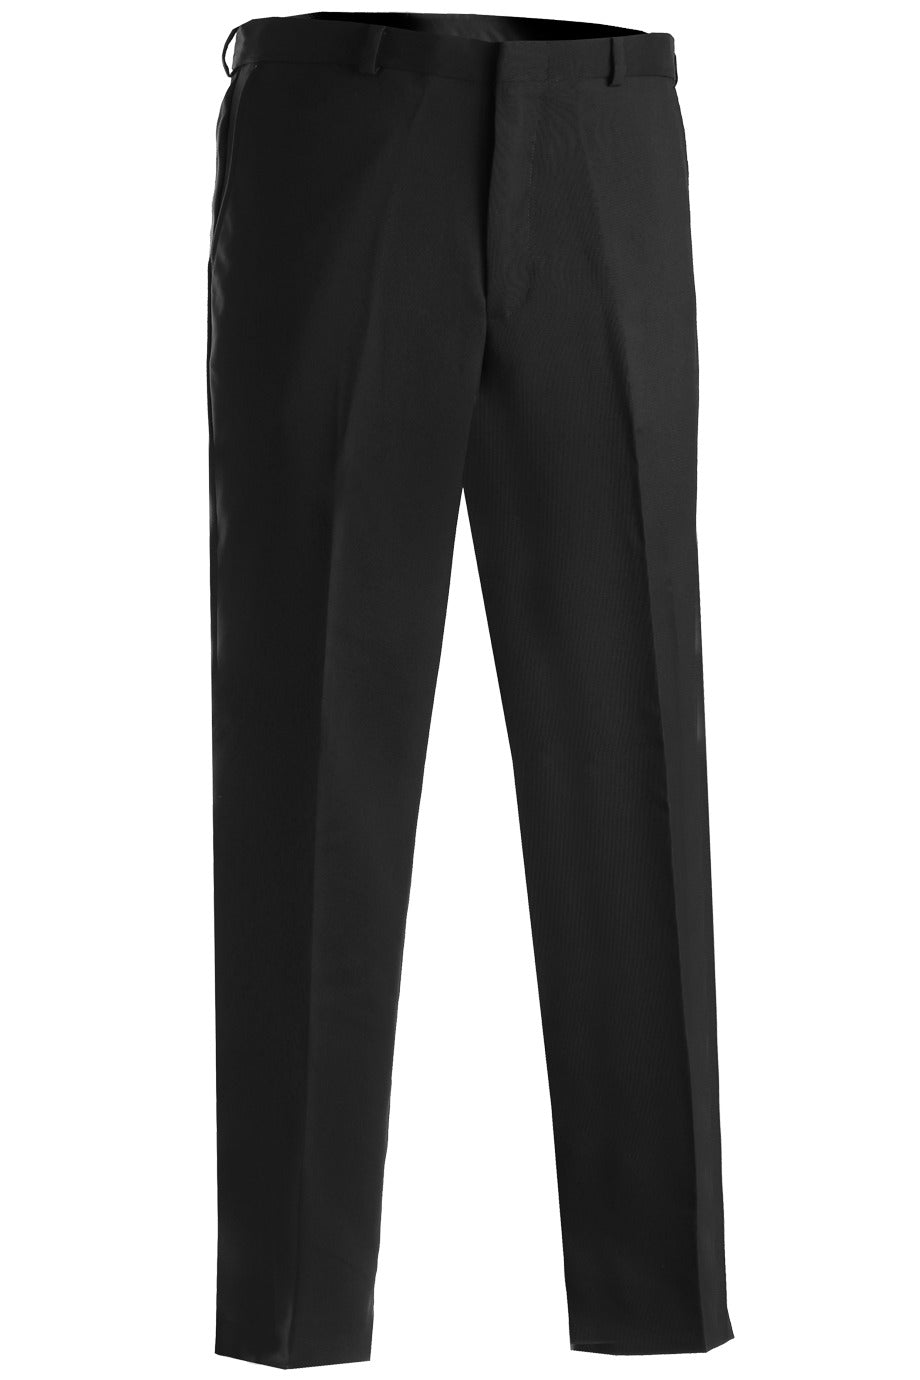 Men's Black Flat Front Security Pant